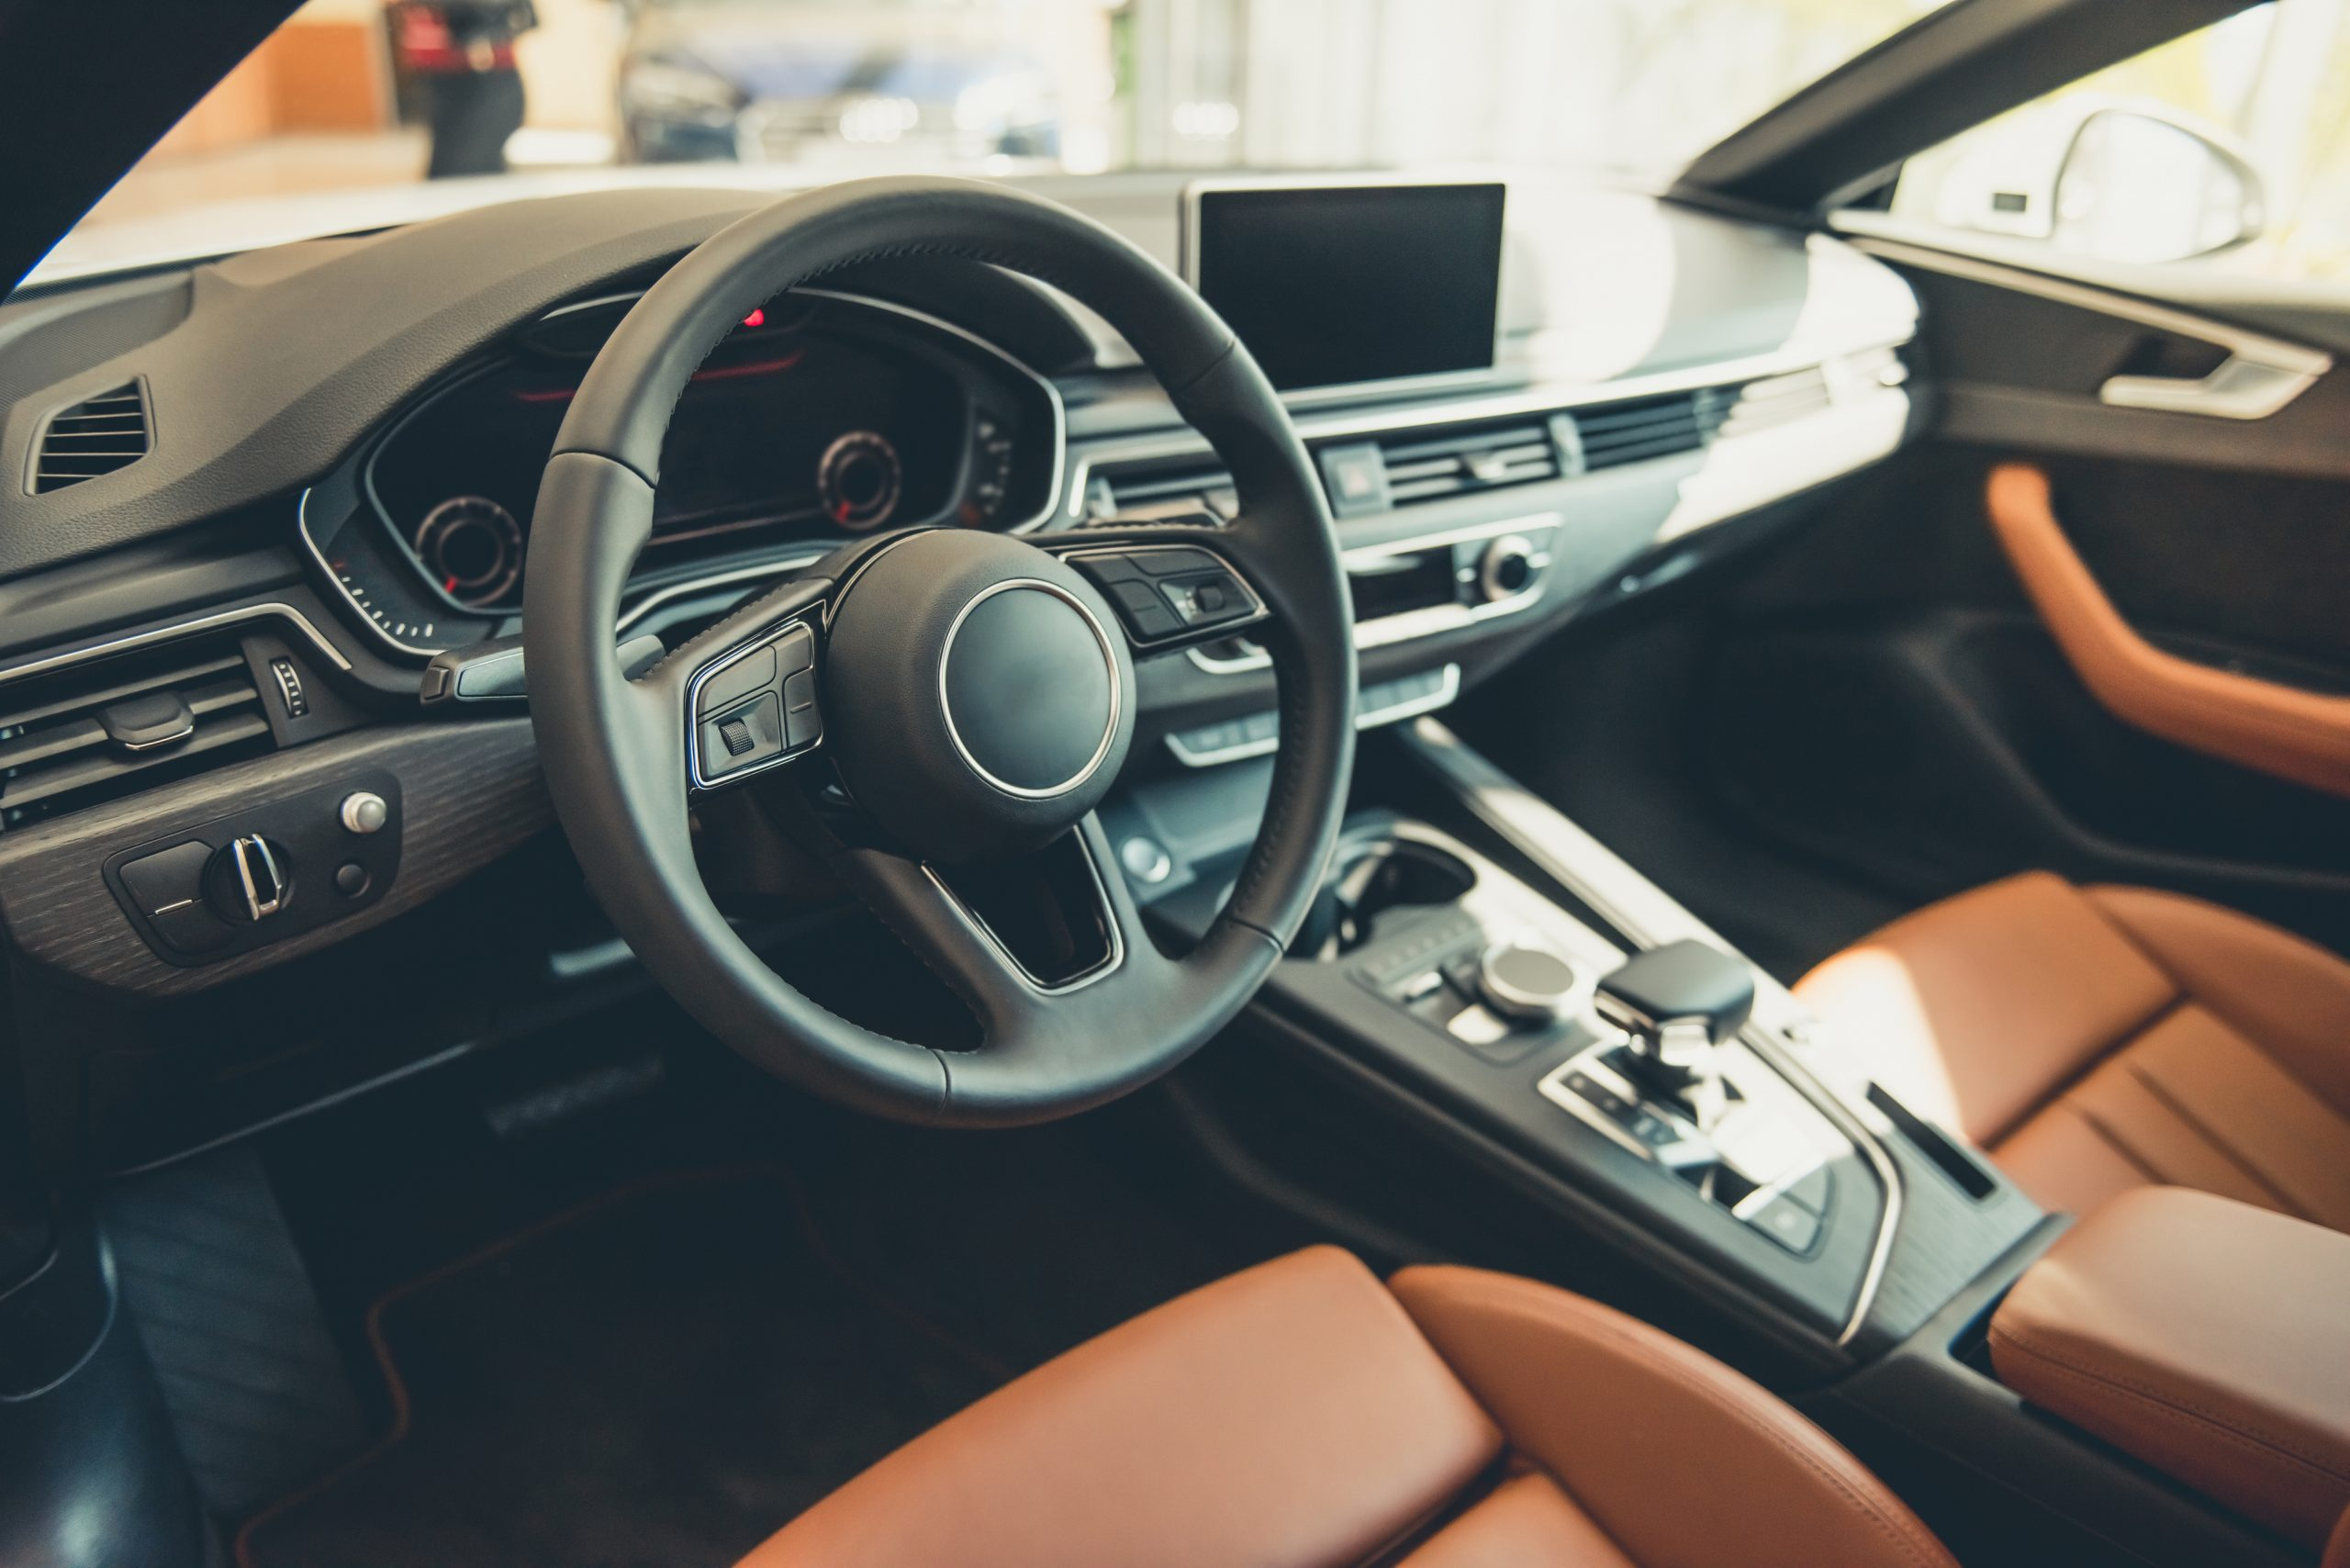 Interior of a new luxury car with loaded features